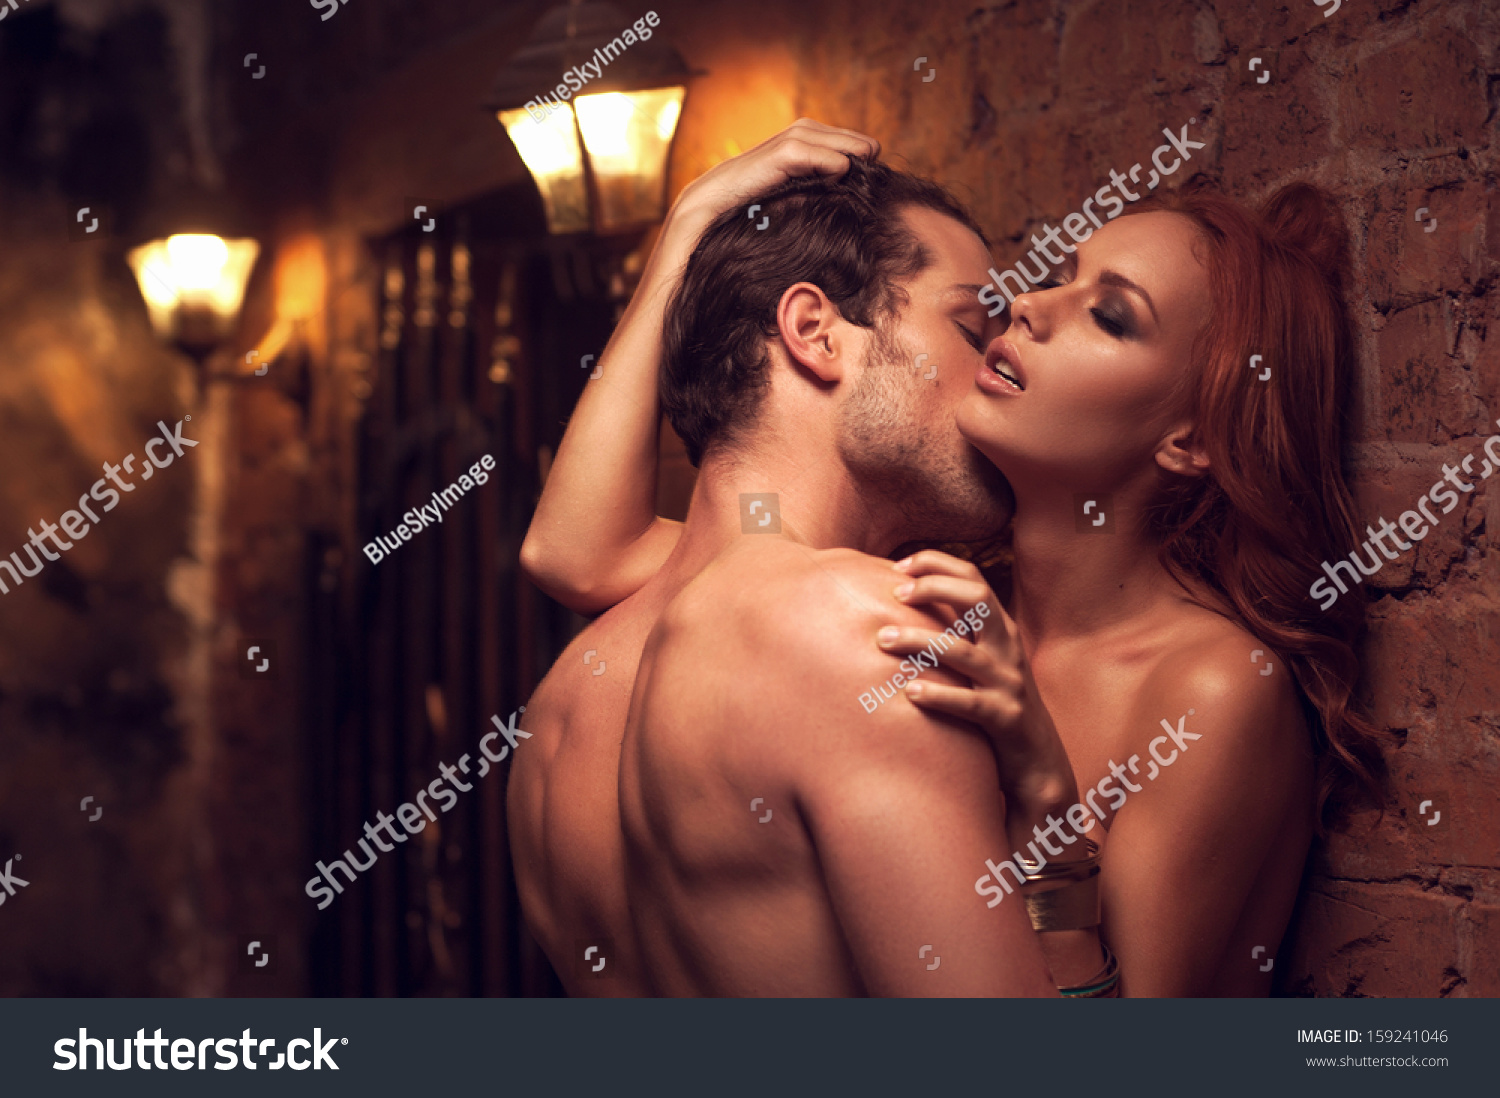 Beautiful Couple Having Sex Gorgeous Place Stock Photo -6234